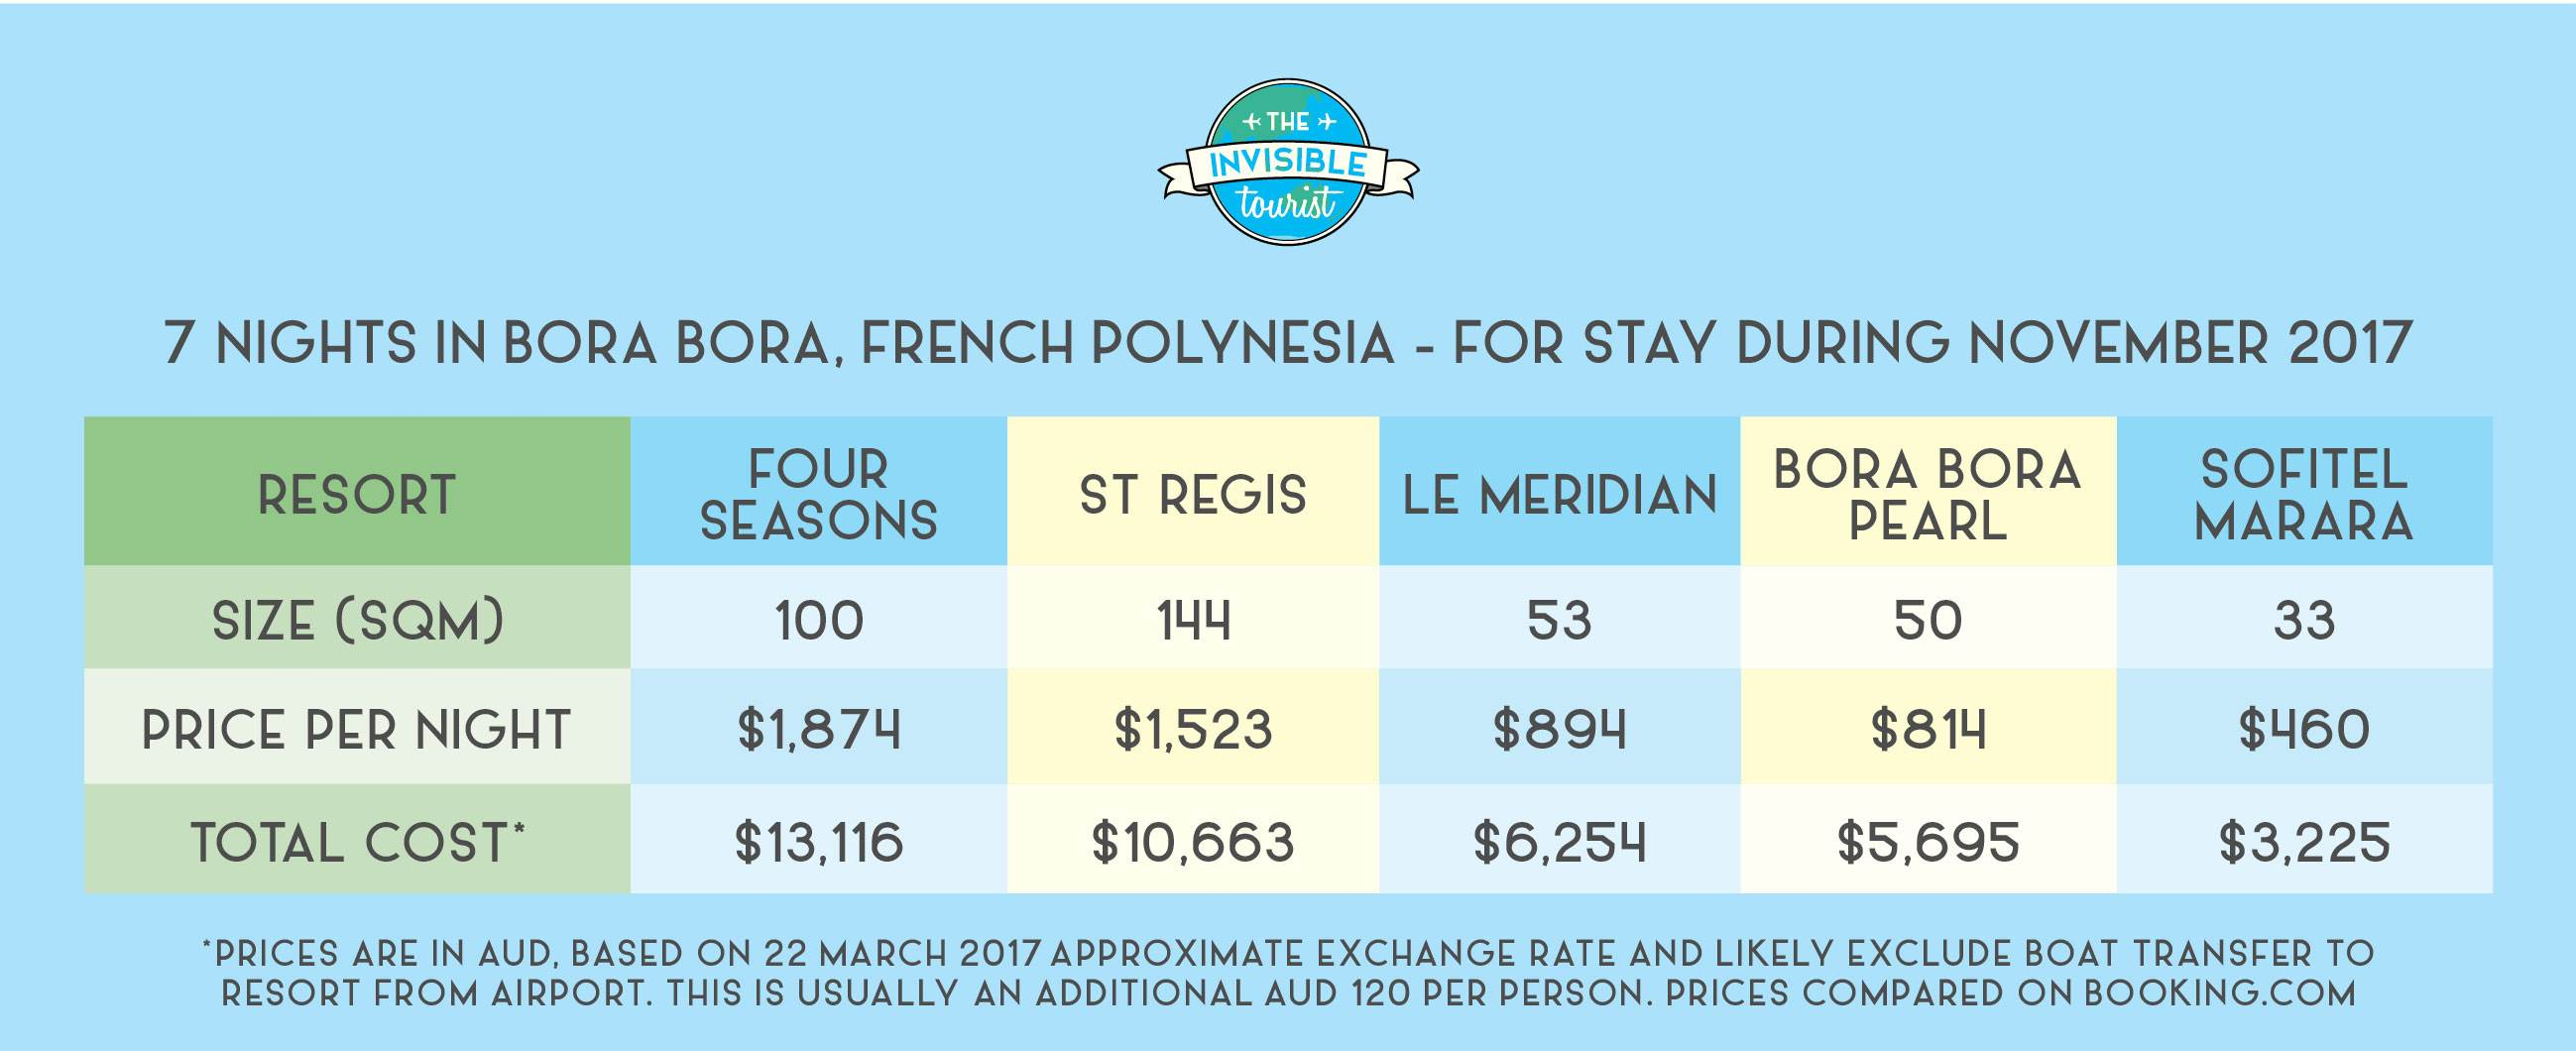 Price Comparison for 7 Nights in Bora Bora - Stay November 2017